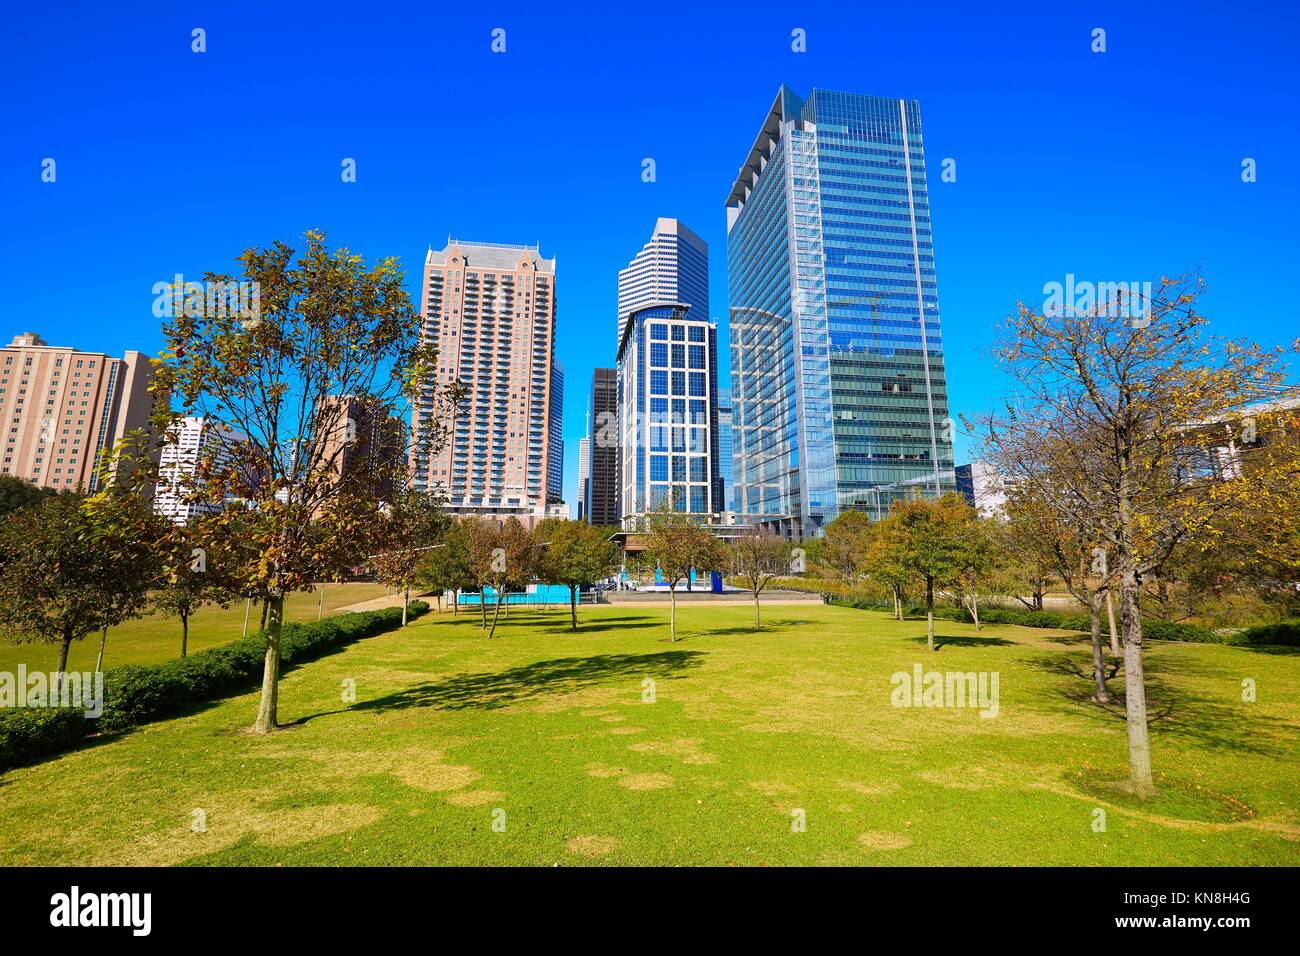 Houston Discovery green park in downtown Texas. Stock Photo